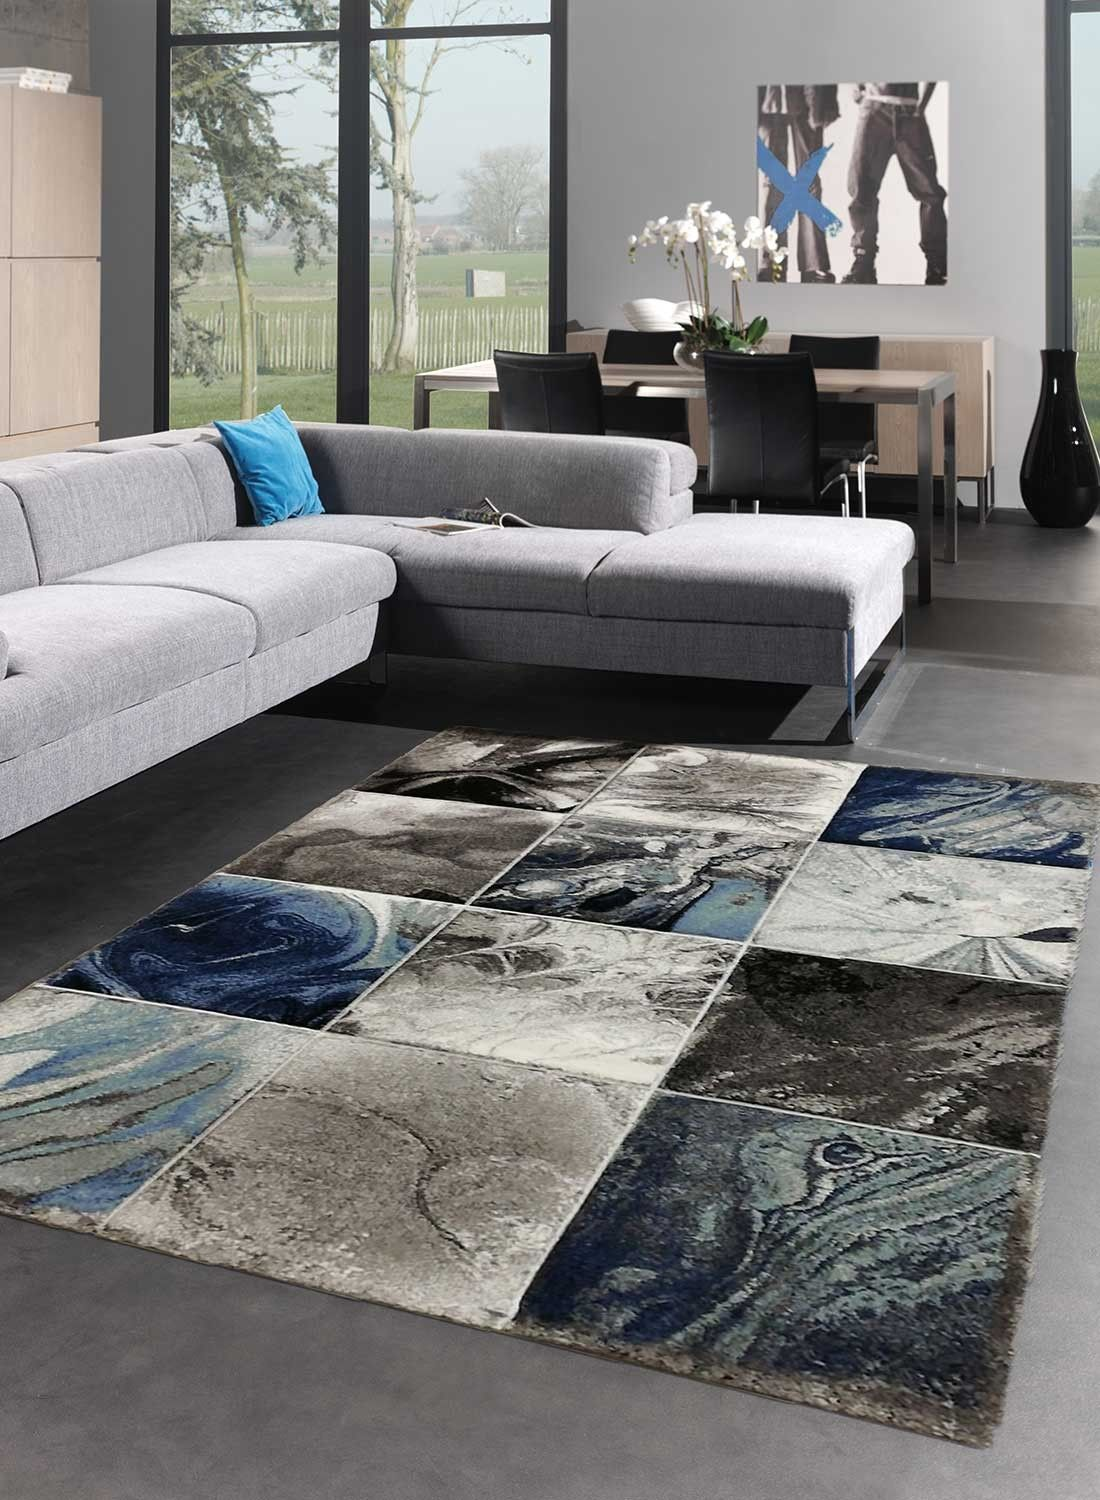 Tapis Salon Carré Tapis De Salon Carre Nacre Bleu En 2019 Tapis De Salon Rugs